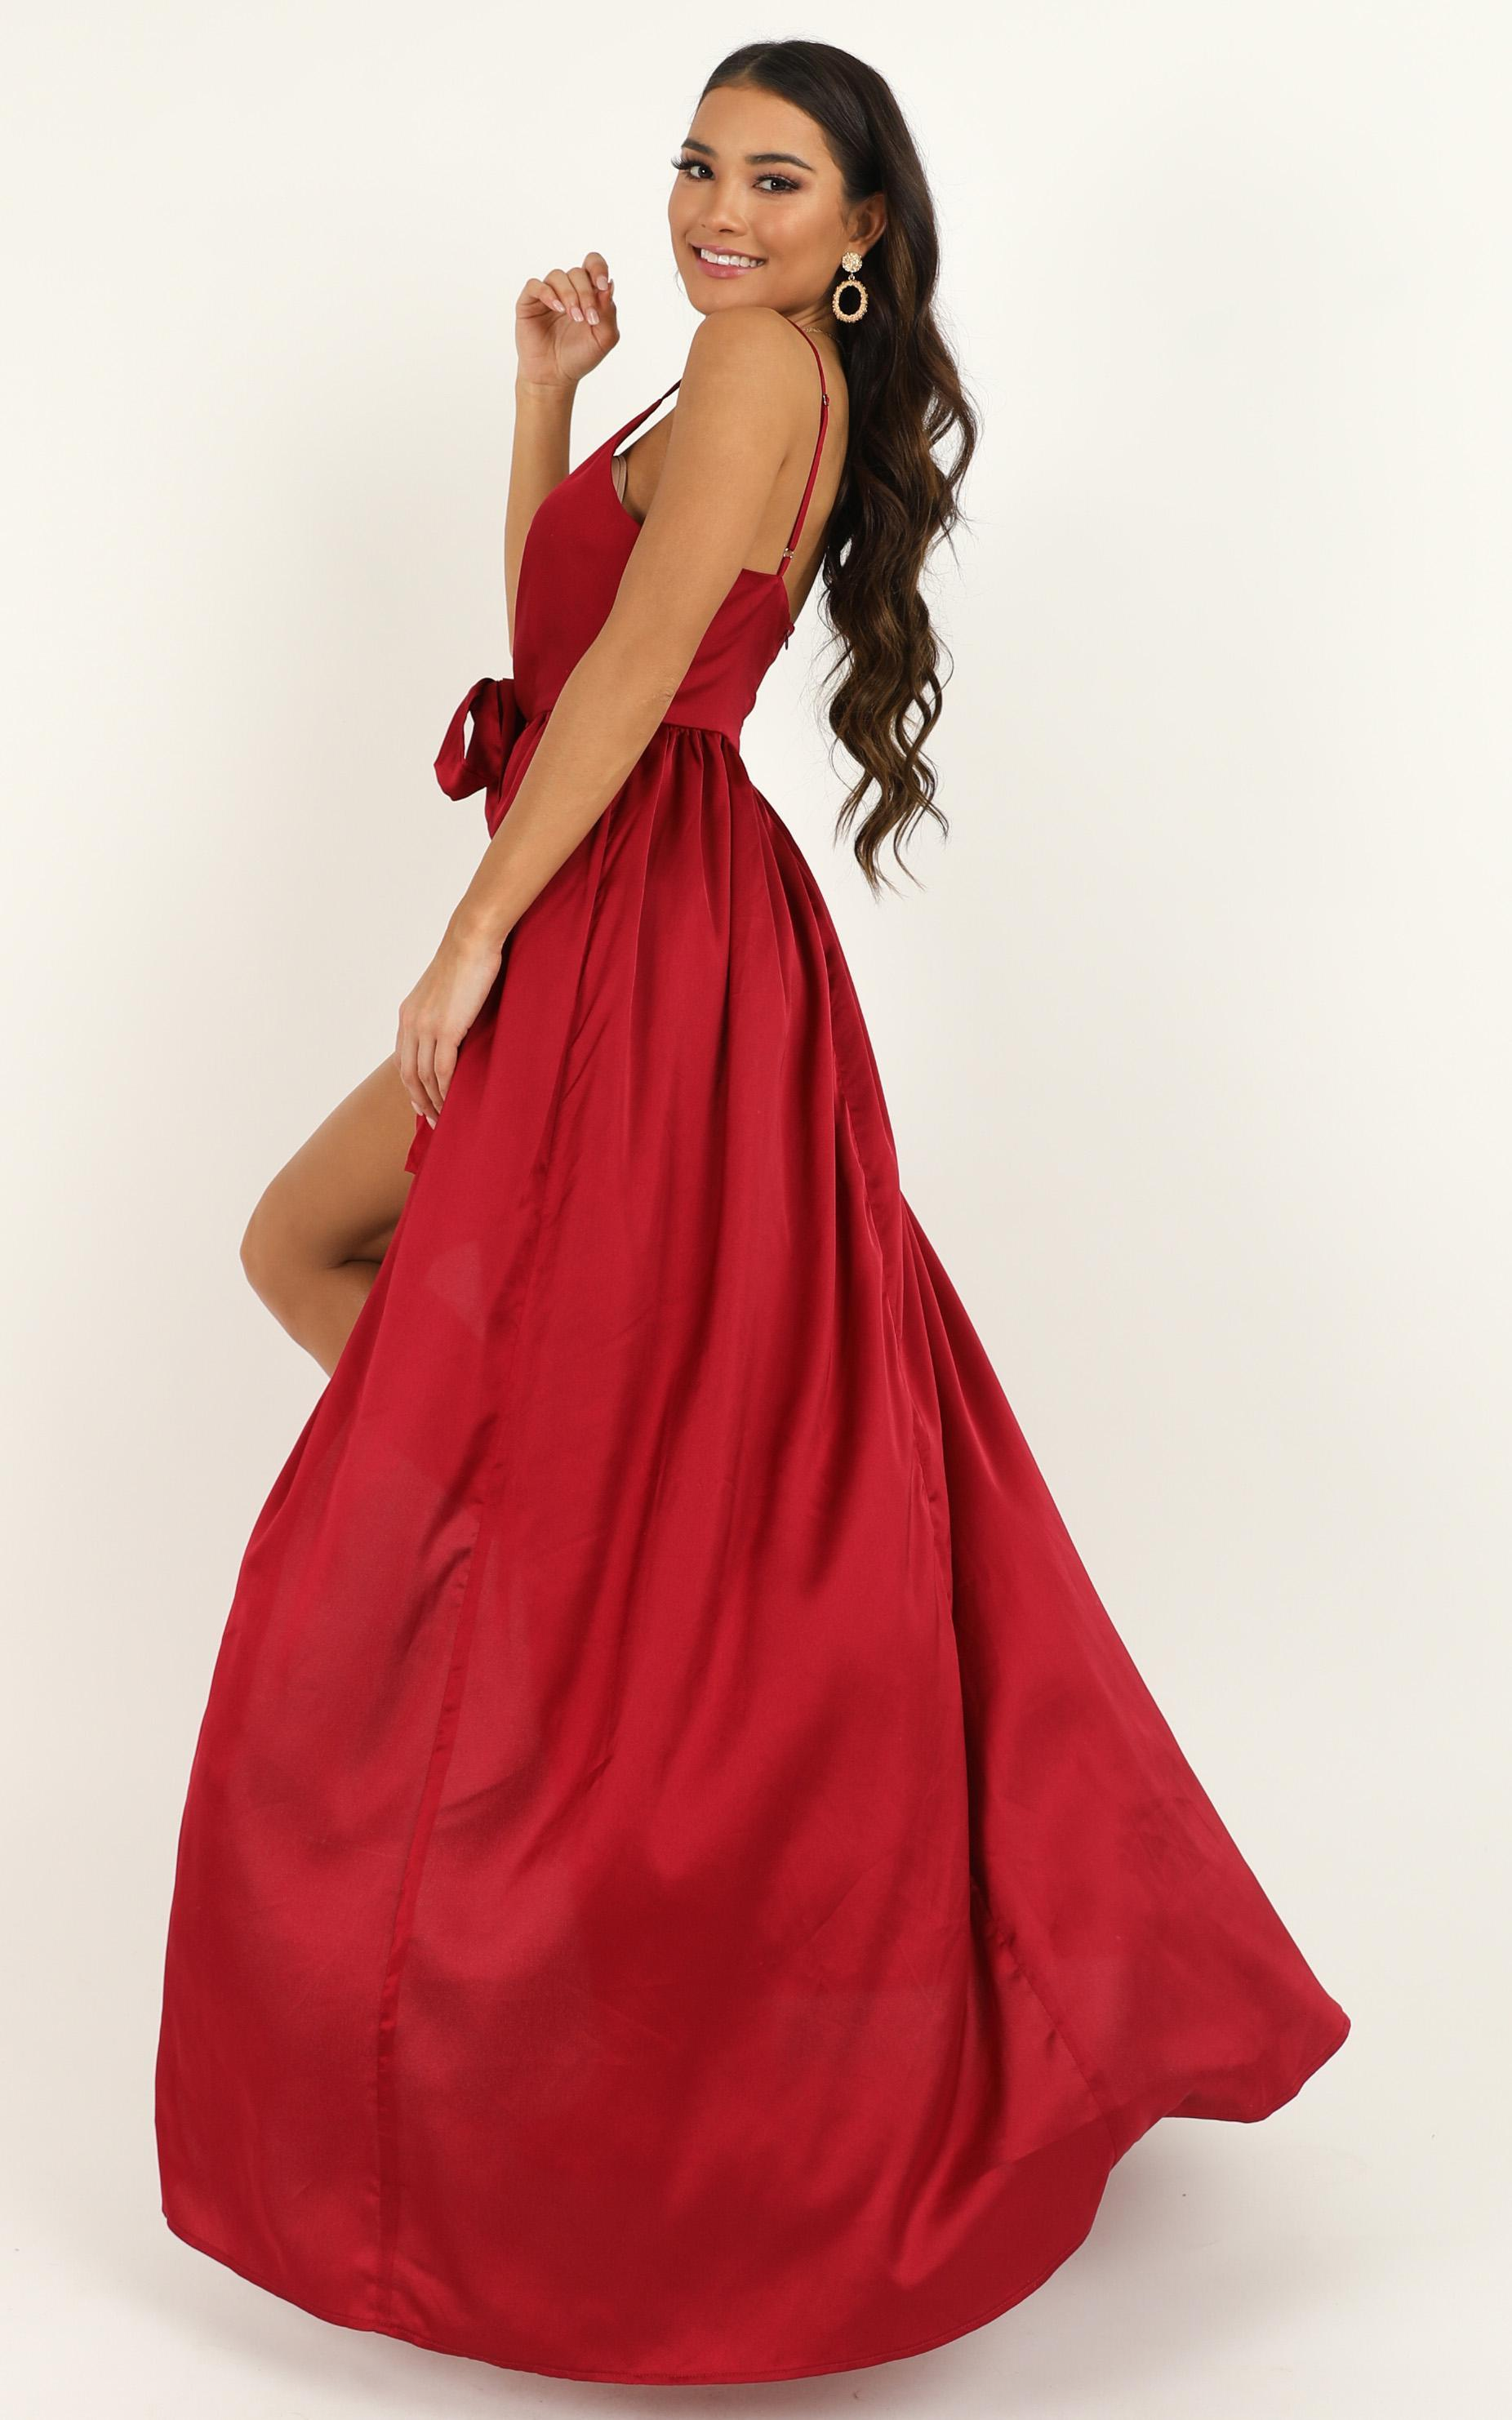 Miracle Worker Dress In Wine Satin - 20 (XXXXL), Wine, hi-res image number null